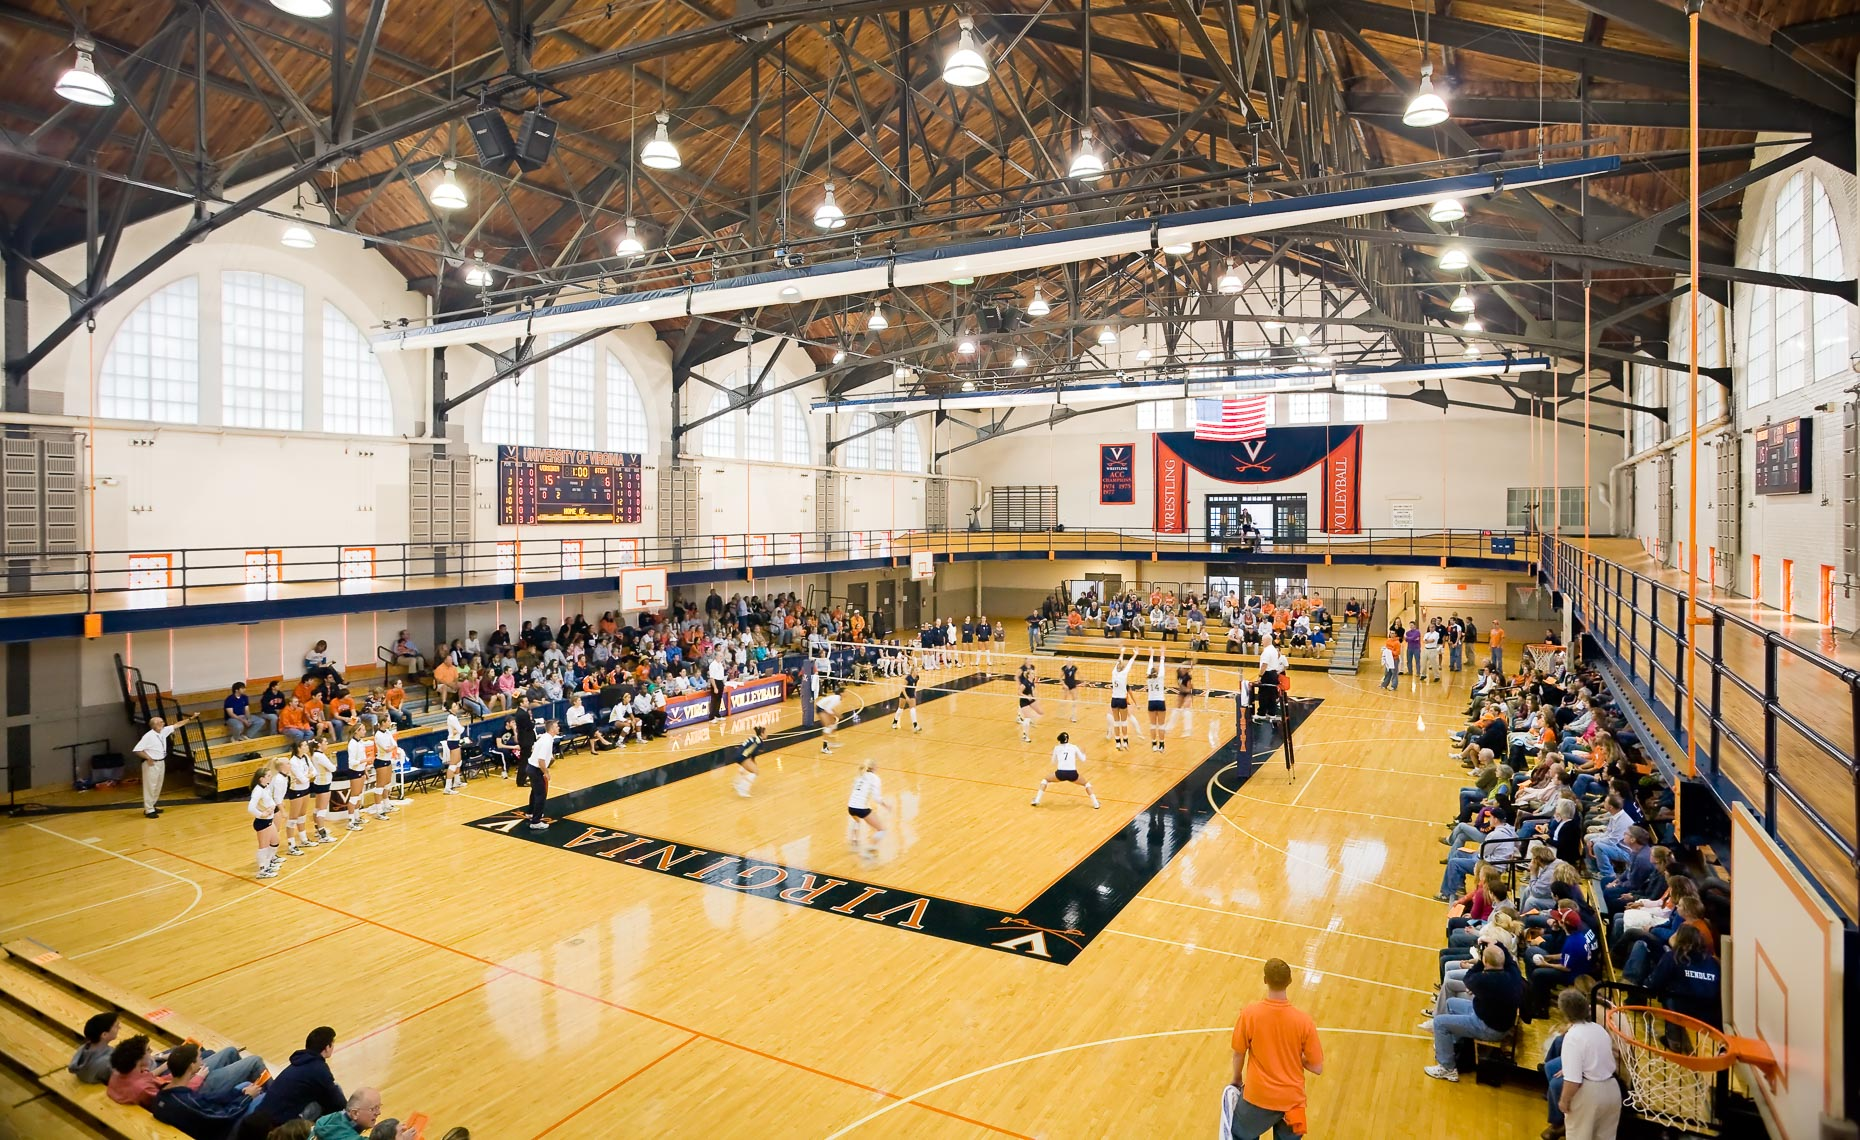 Virginia Hamrick Photography - Memorial Gym at University of Virginia